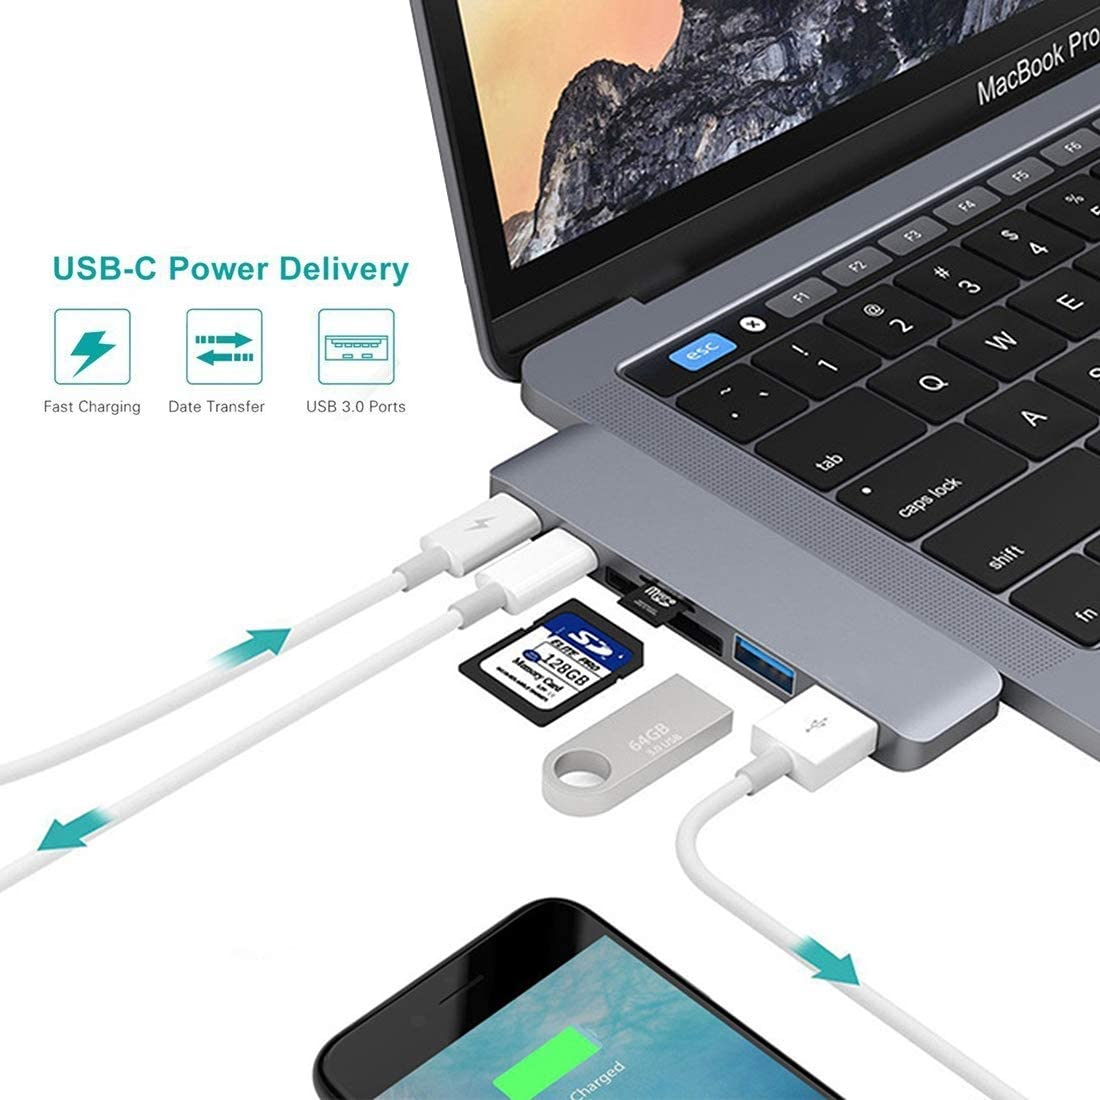 ZMKK USB Type-C Series USB HUB 6 in 1 Multi-Function Aluminium Alloy 5Gbps Transfer Rate Dual USB-C//Type-C HUB Adapter with 2 USB 3.0 Ports /& 2 USB-C//Type-C Ports /& SD Card Slot /& TF Card Slot for